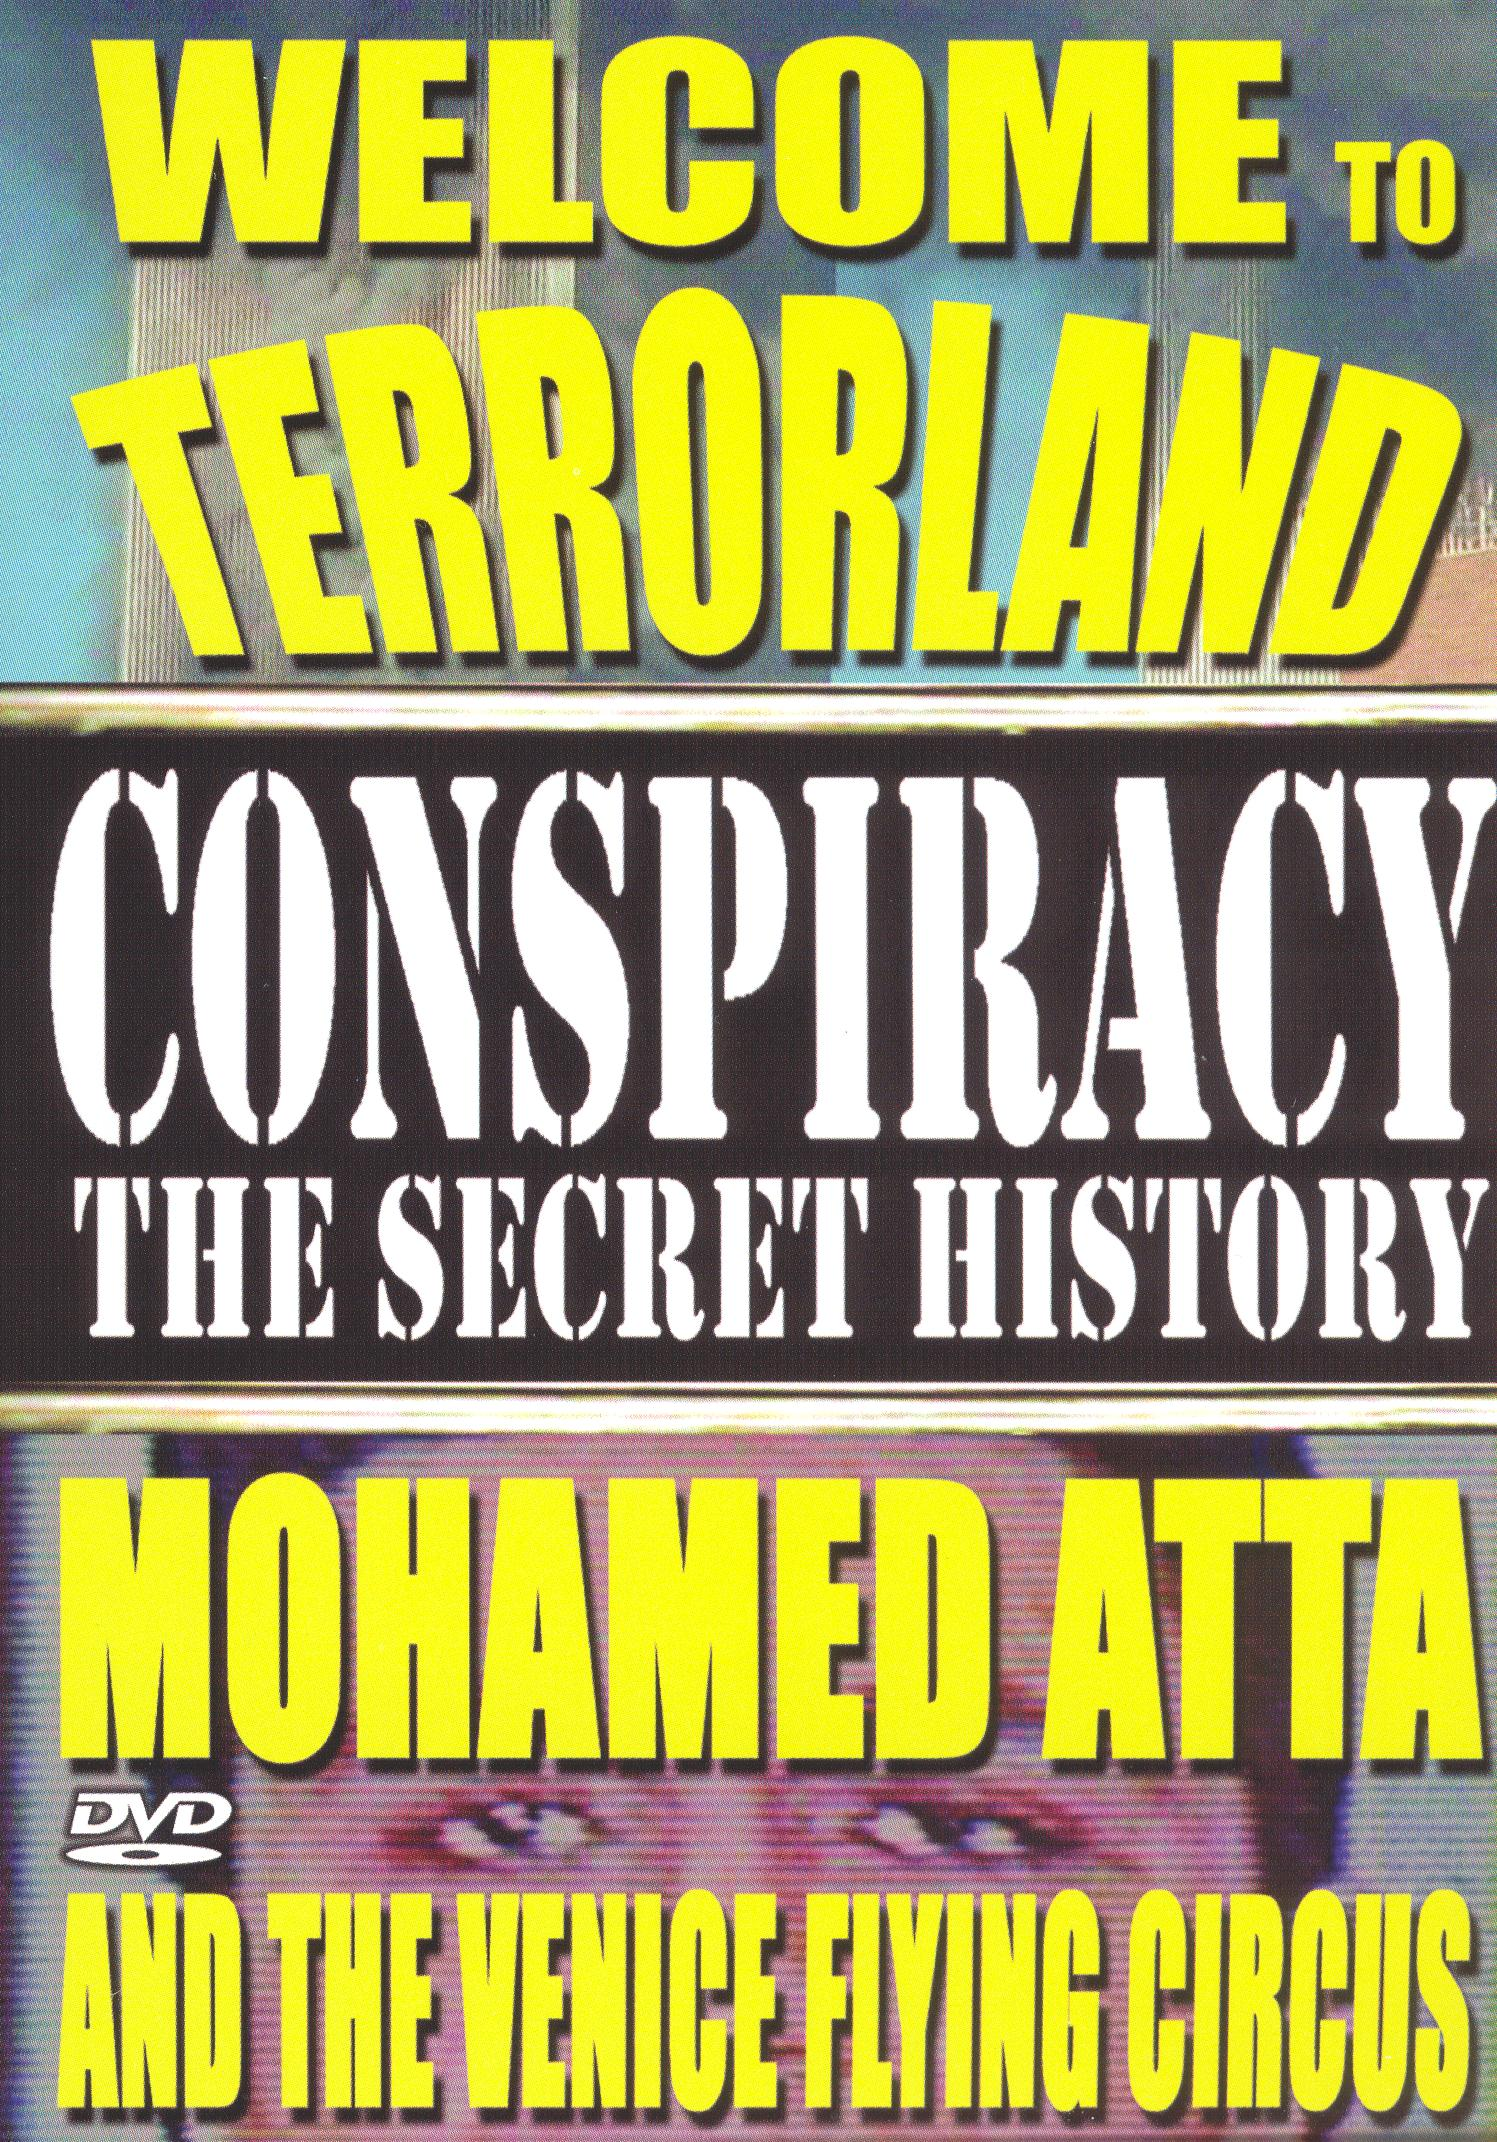 Conspiracy: The Secret History - Mohamed Atta & the Venice Flying Circus